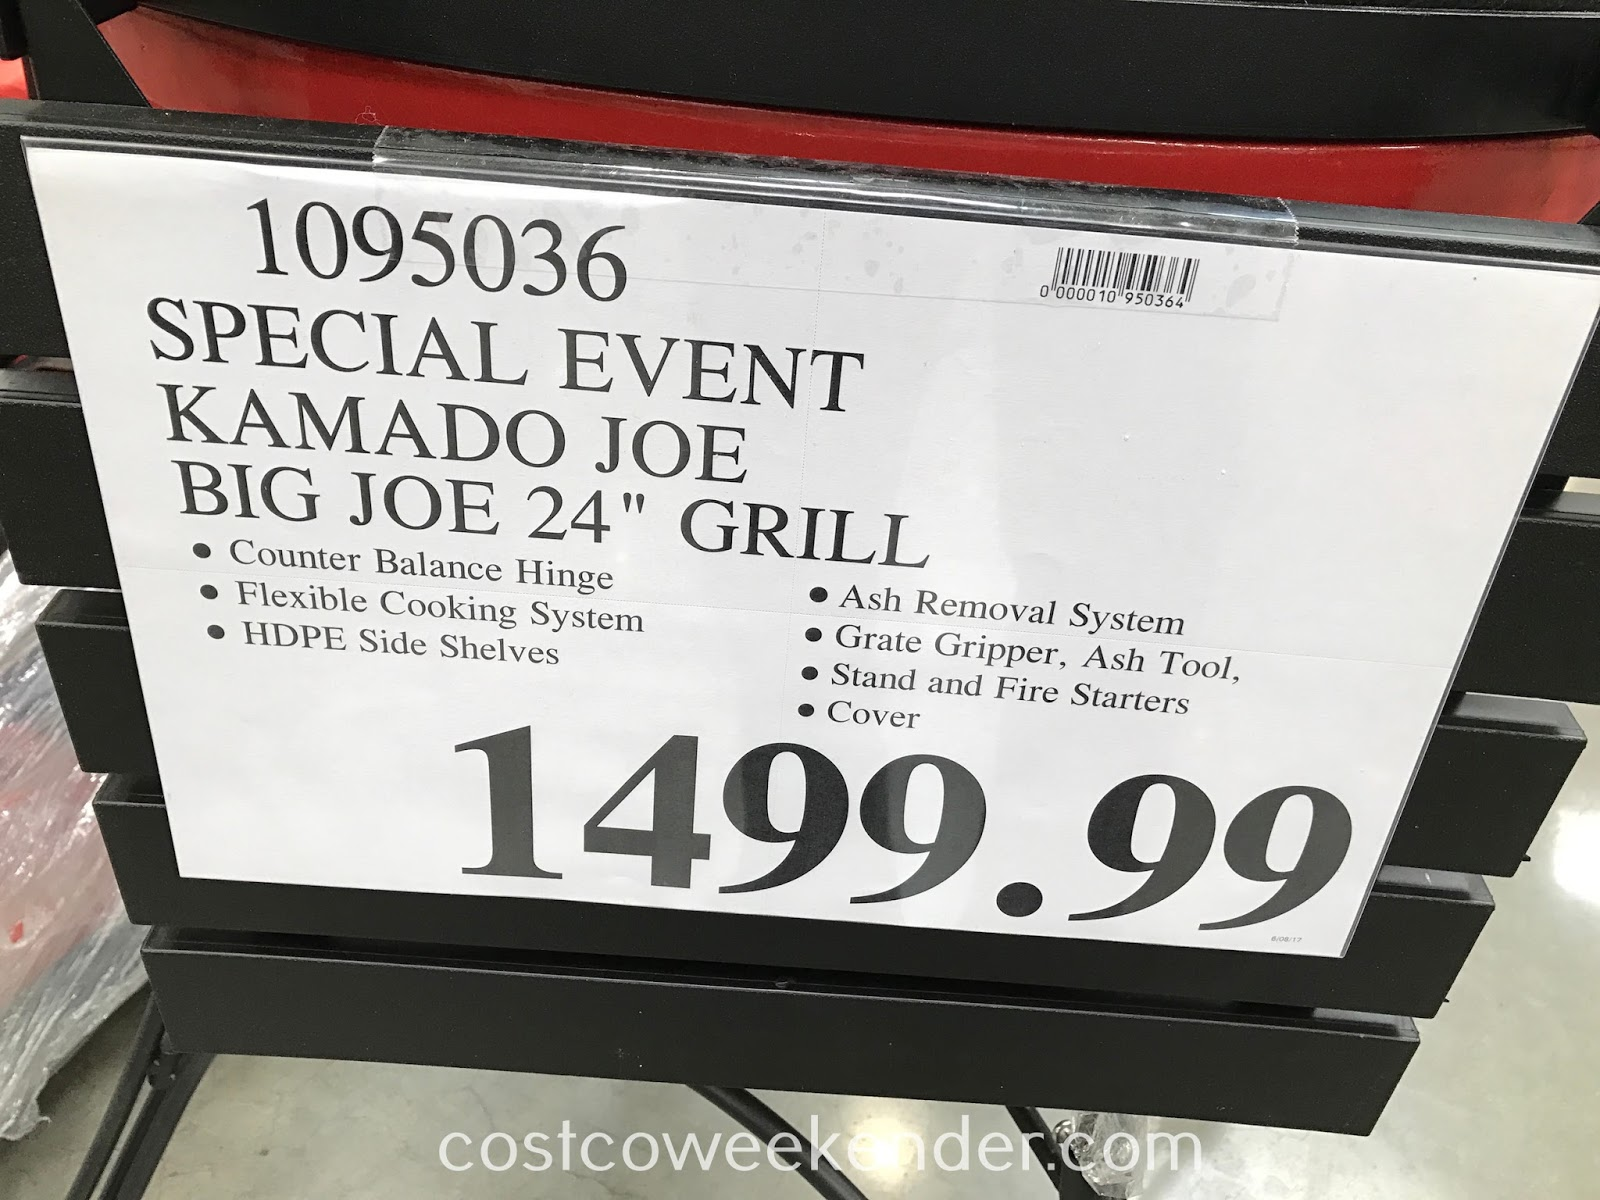 Costco 1095036 - Kamado Joe Big Joe 24-inch Grill: get it quick during the Costco special event